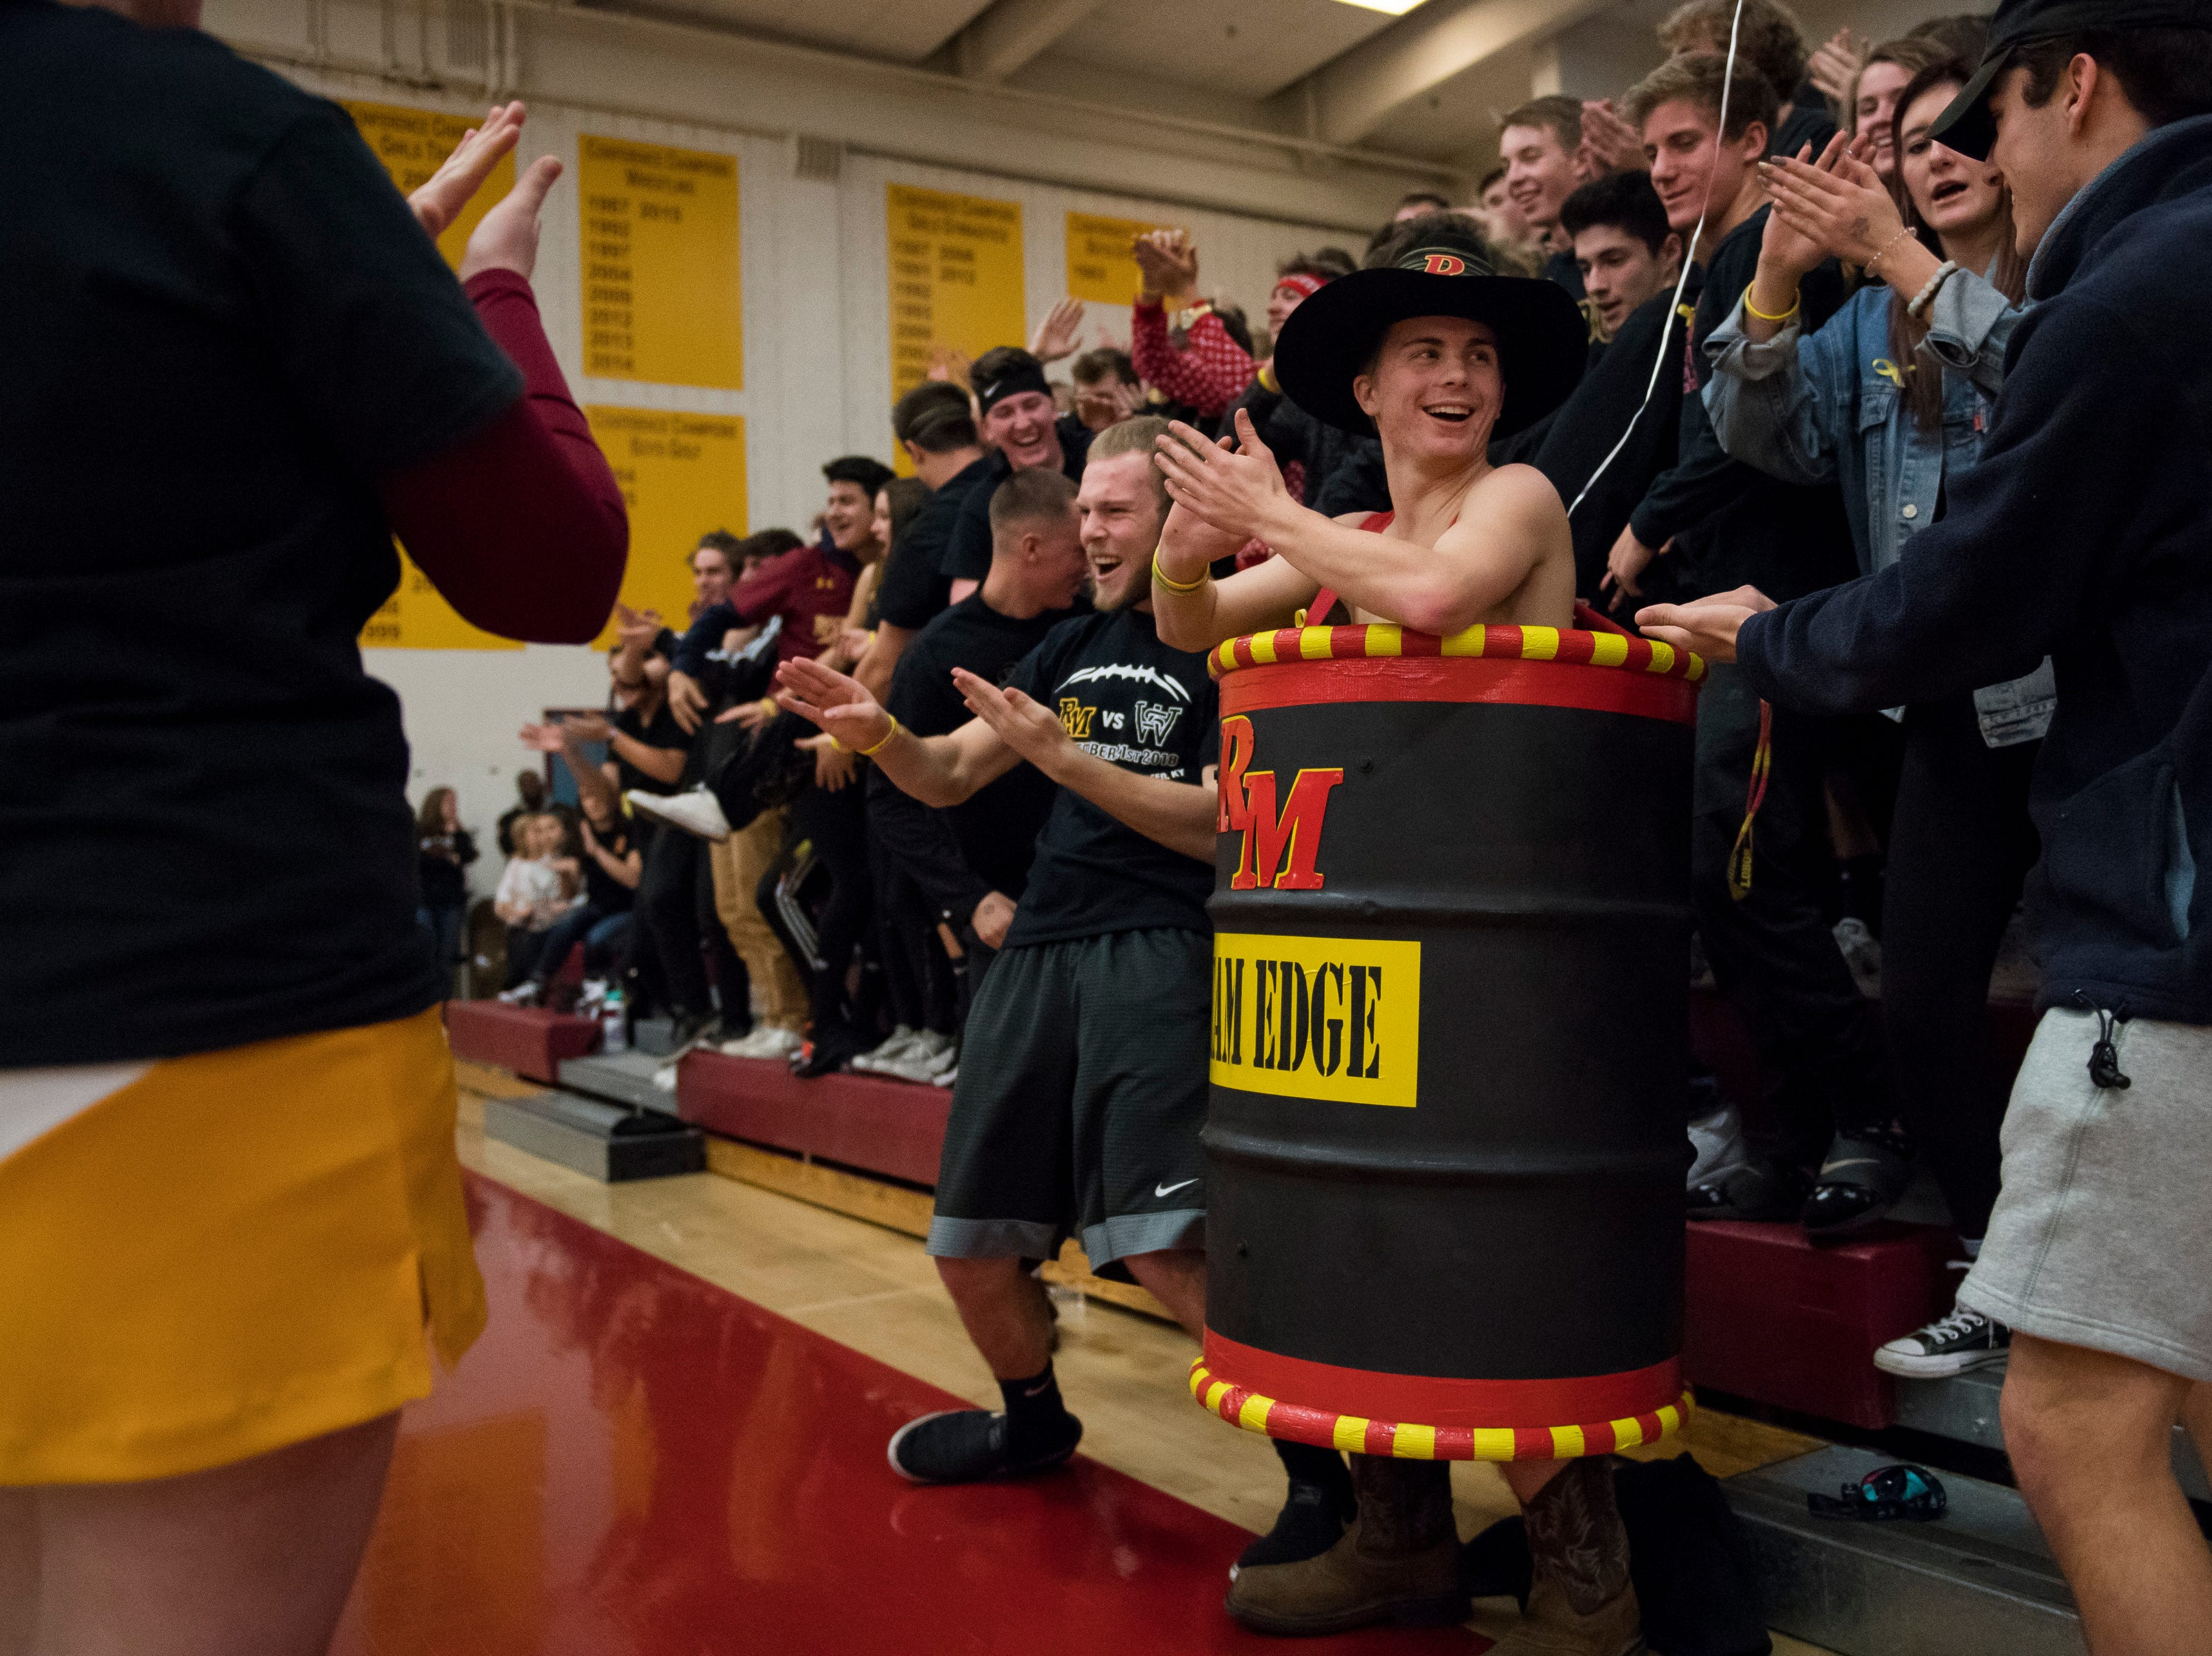 """Rocky Mountain High School senior Conner Culhane celebrates with the student section while wearing """"Team Edge"""" barrel during a game against Fort Collins High School on Friday, Jan. 18, 2019, at Rocky Mountain High School in Fort Collins, Colo."""